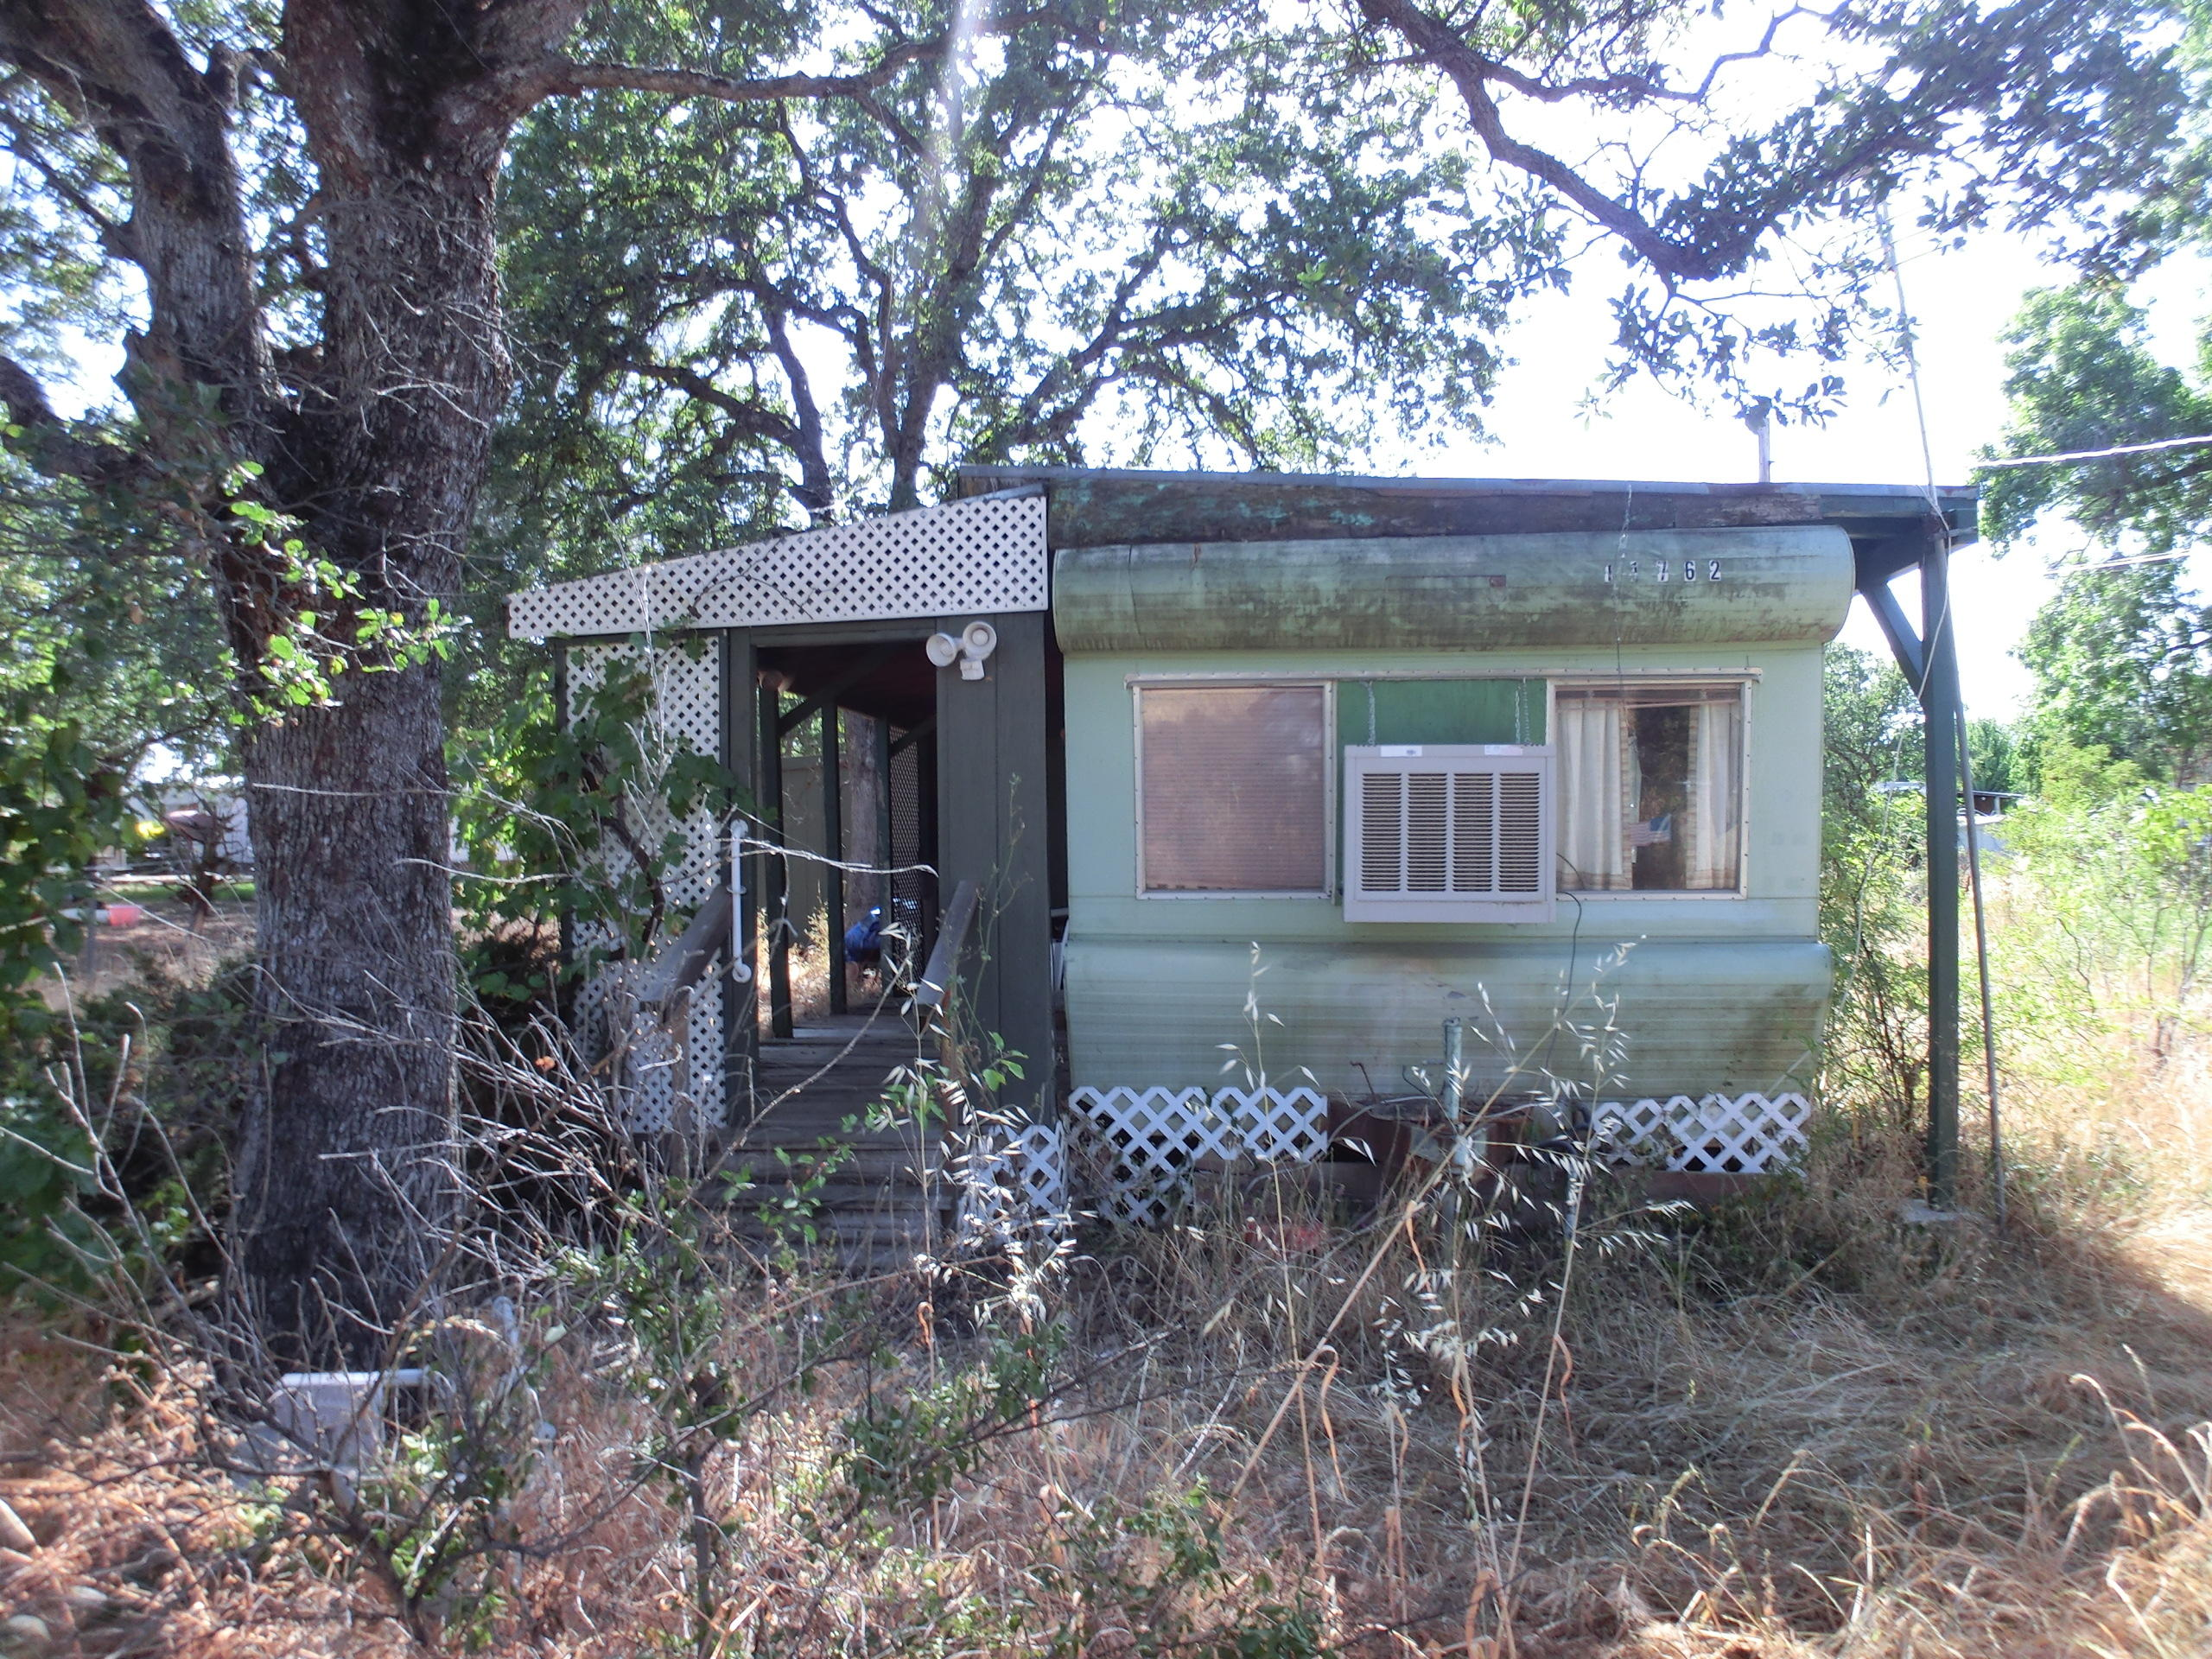 11762 McElroy, Redding, CA 96003 (MLS# 17-2932) - HOUSE of ... on decorating old mobile homes, selling old mobile homes, fixing up rv, double wide mobile homes,